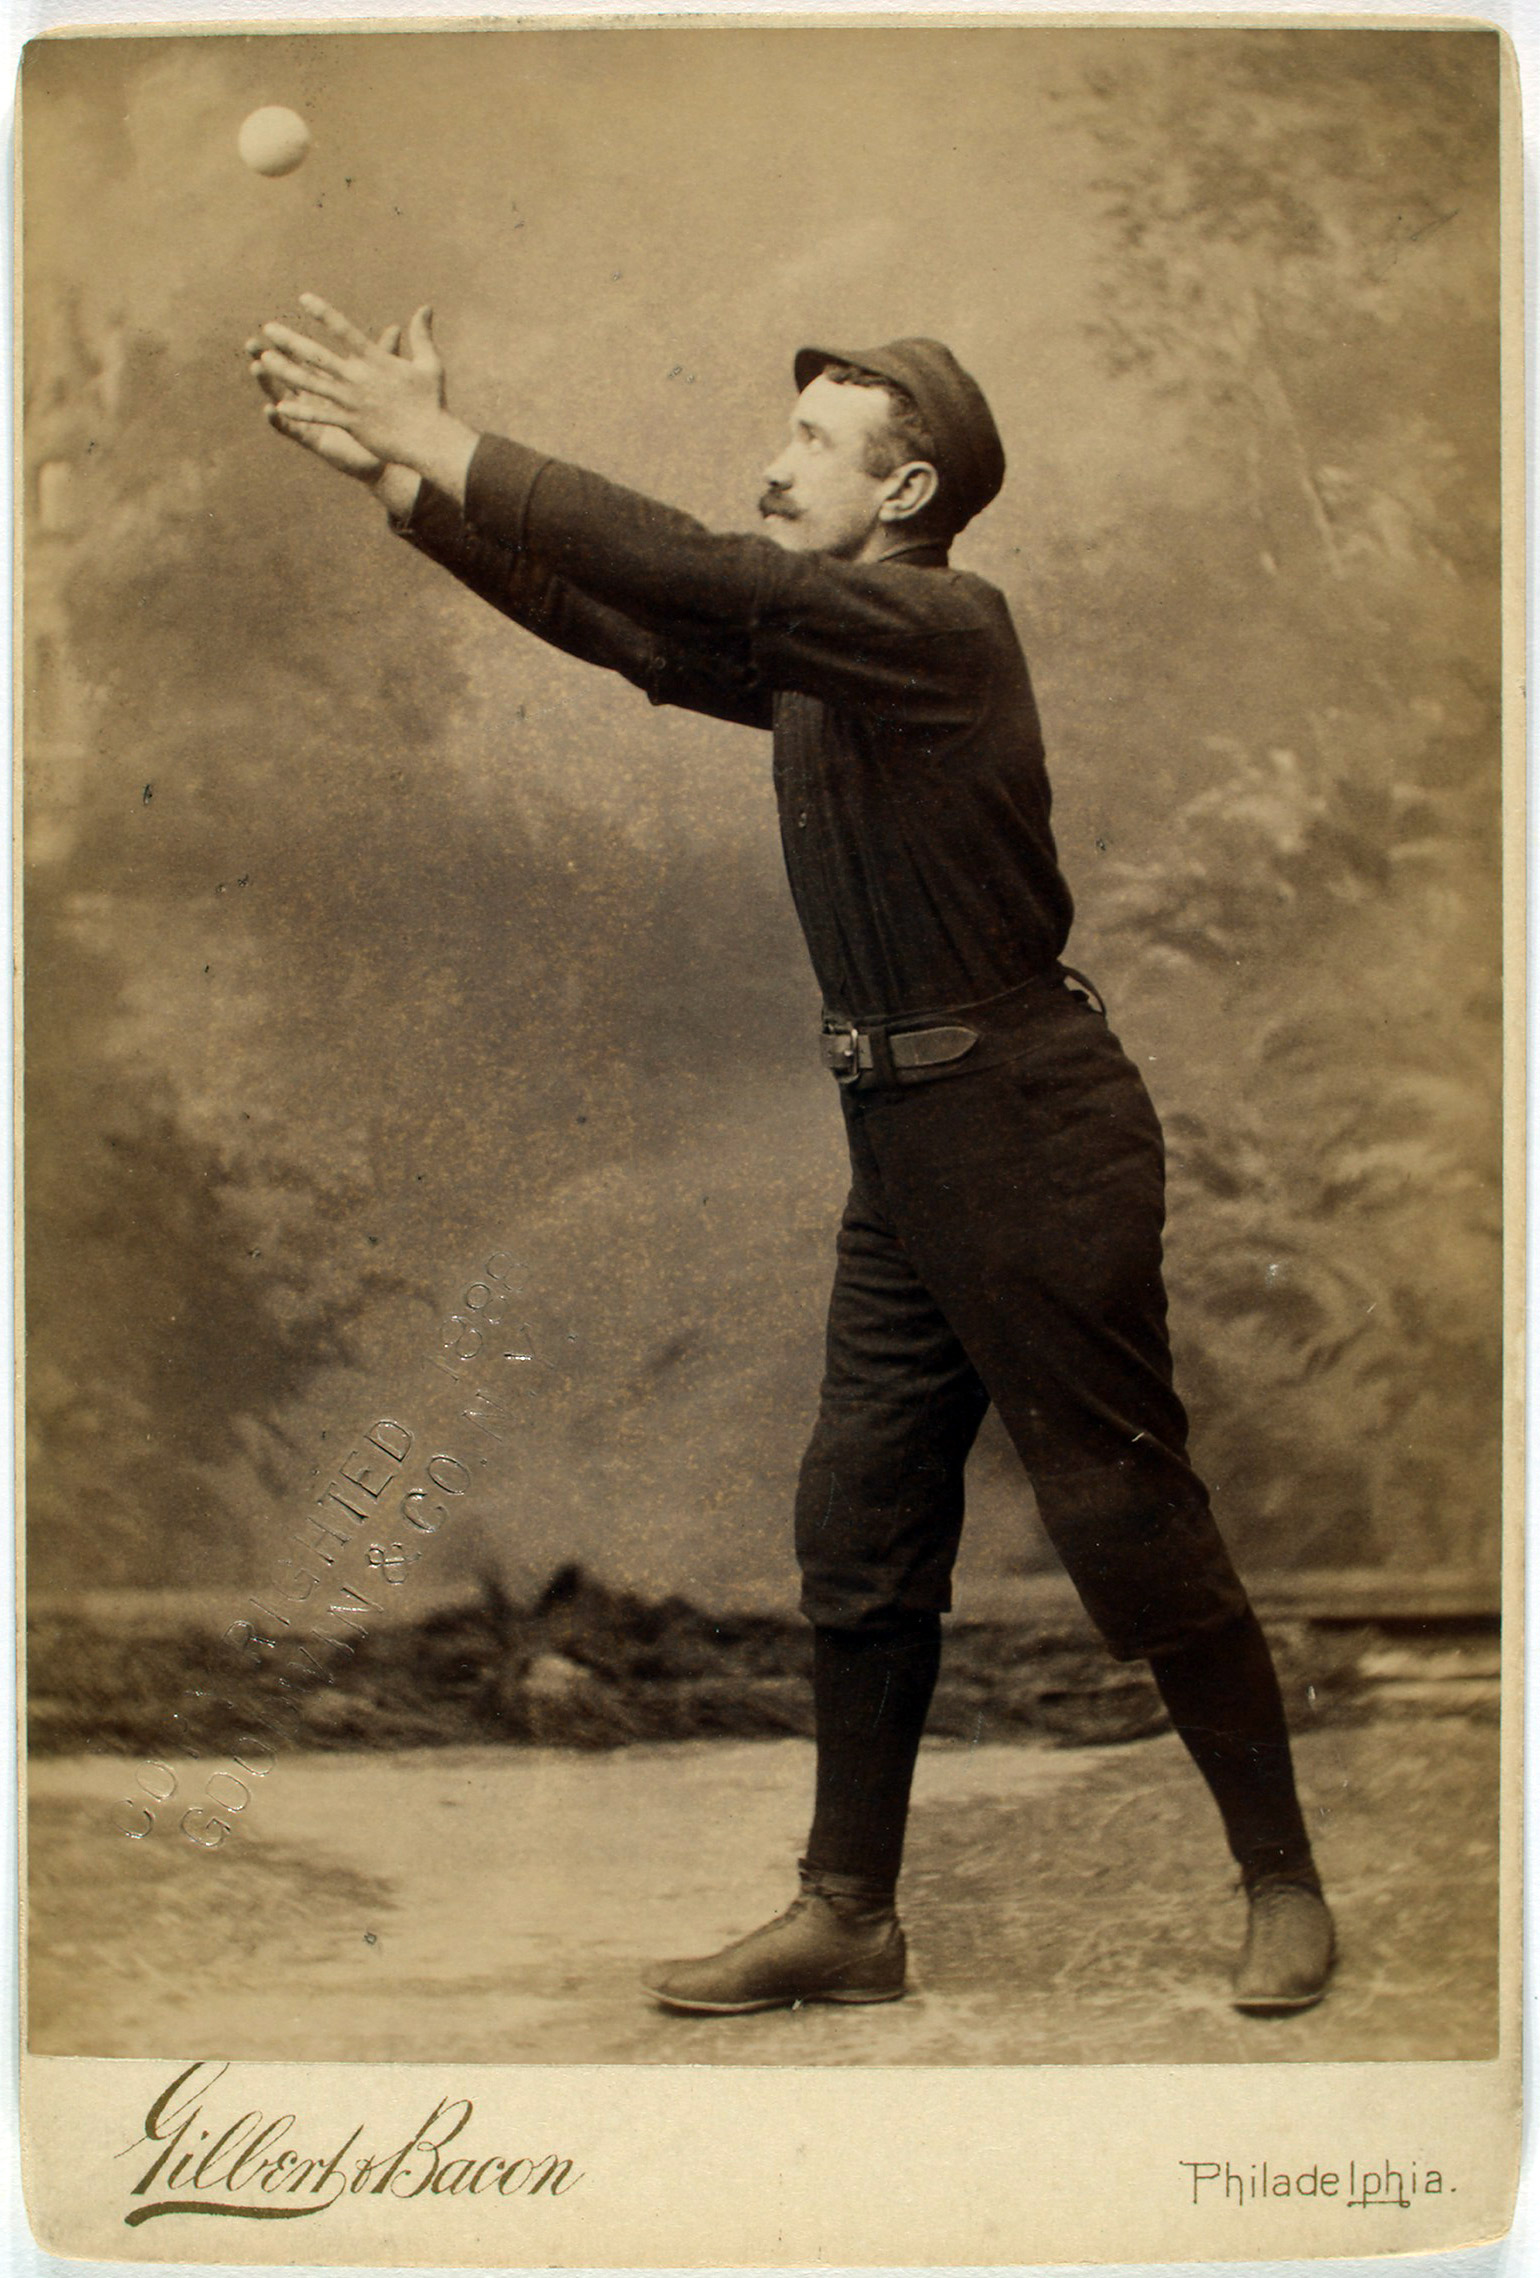 Deacon McGuire of the Philadelphia Quakers. From the A. G. Spalding Baseball Collection.